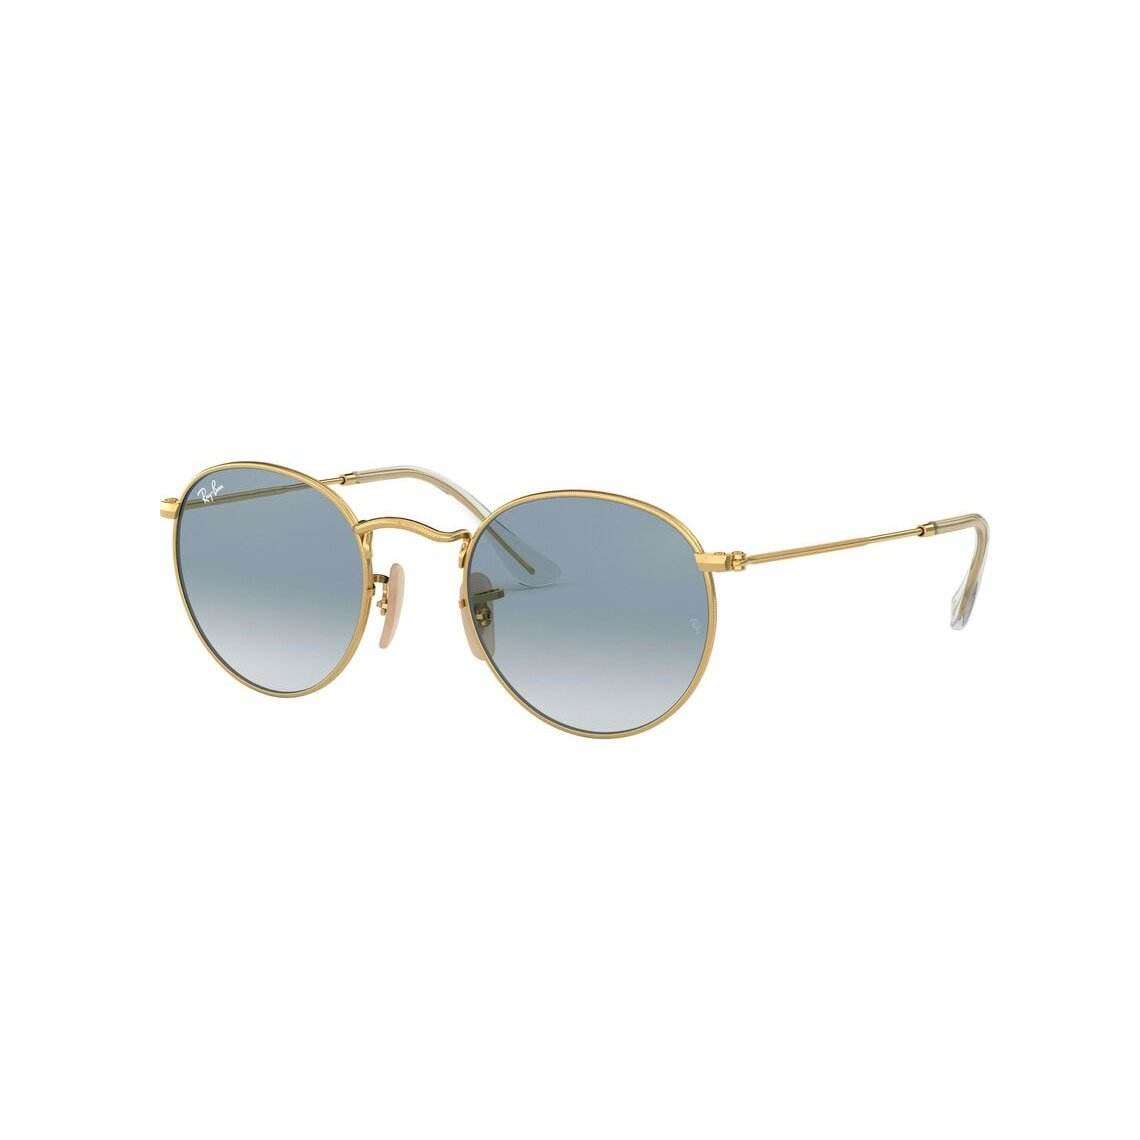 Ray-Ban Round metal RB3447N 001/3F 50